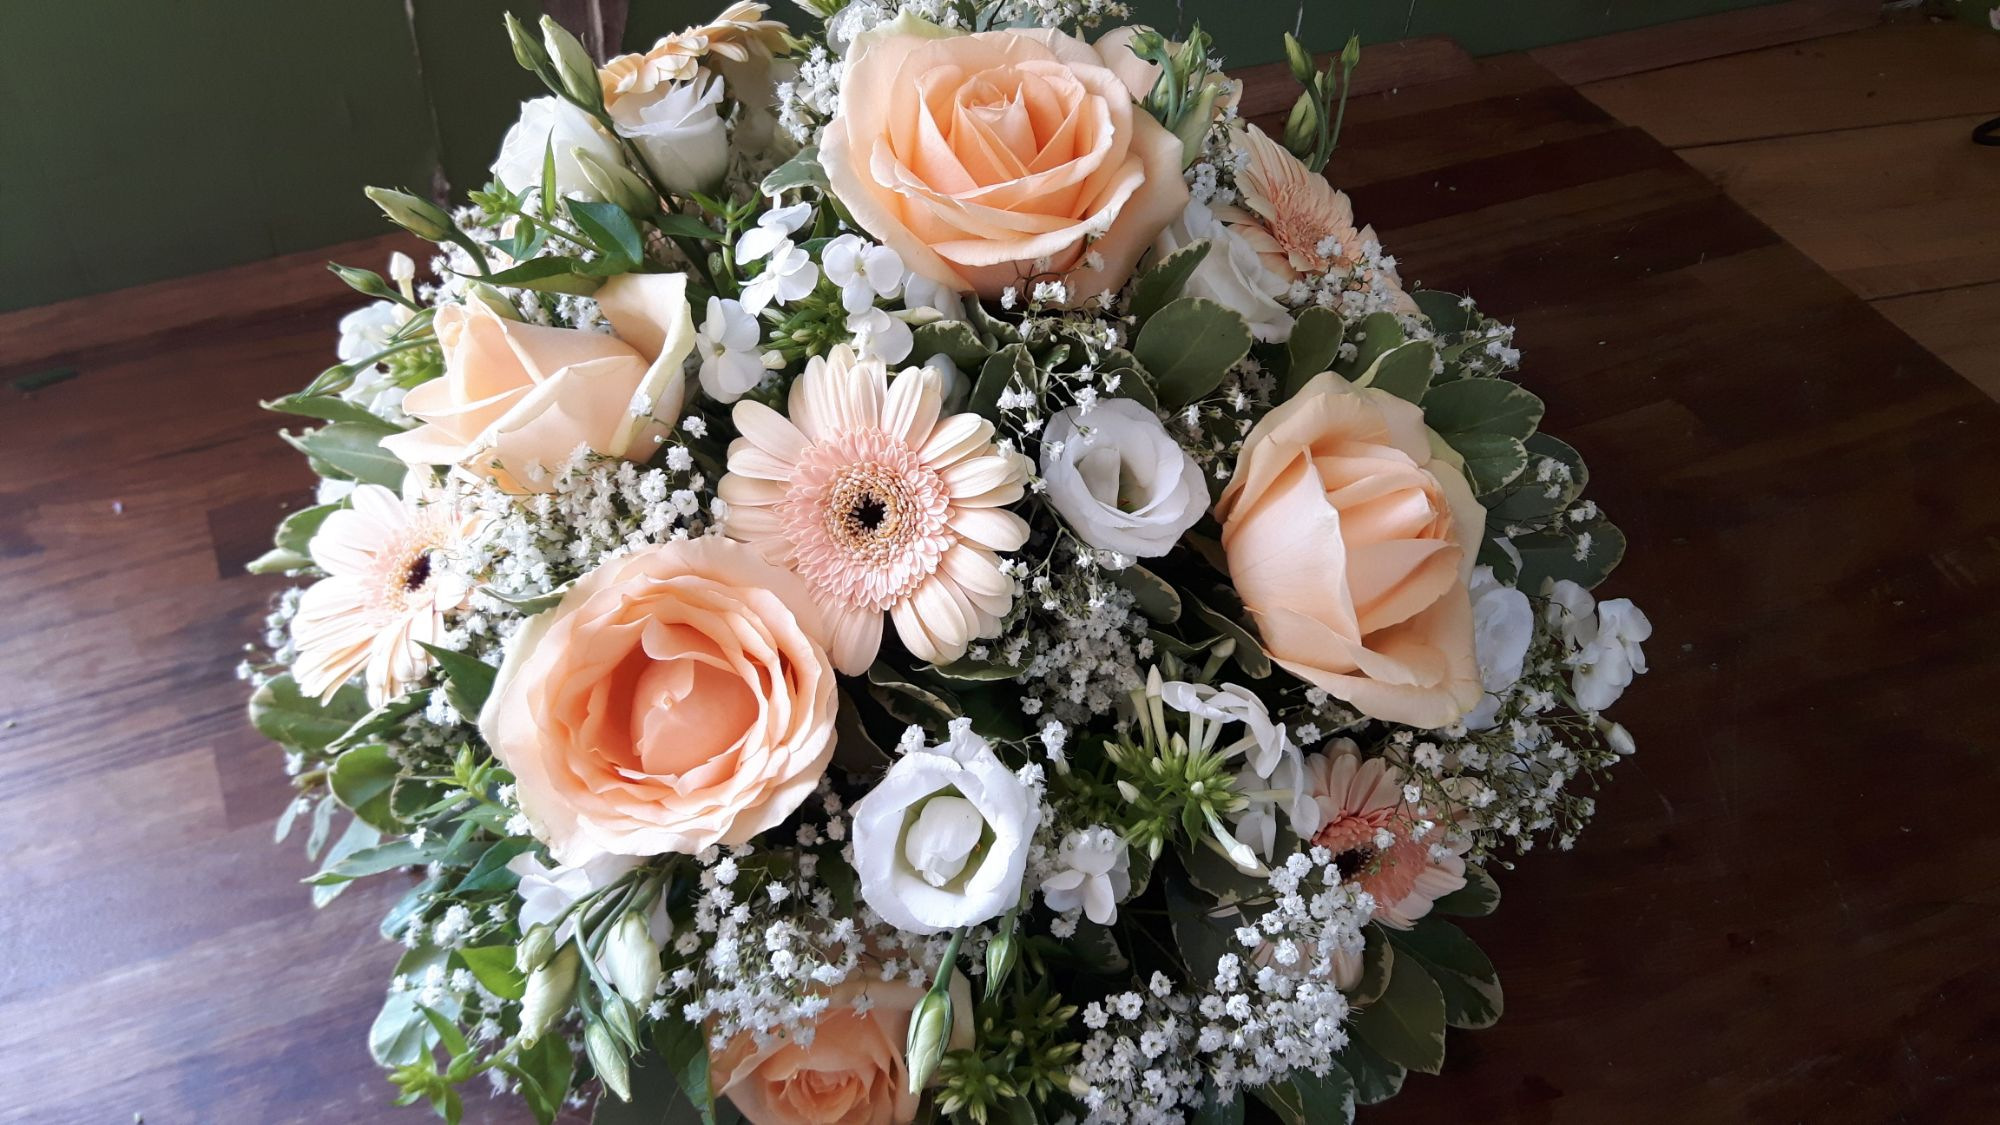 posy arrangement funeral flowers